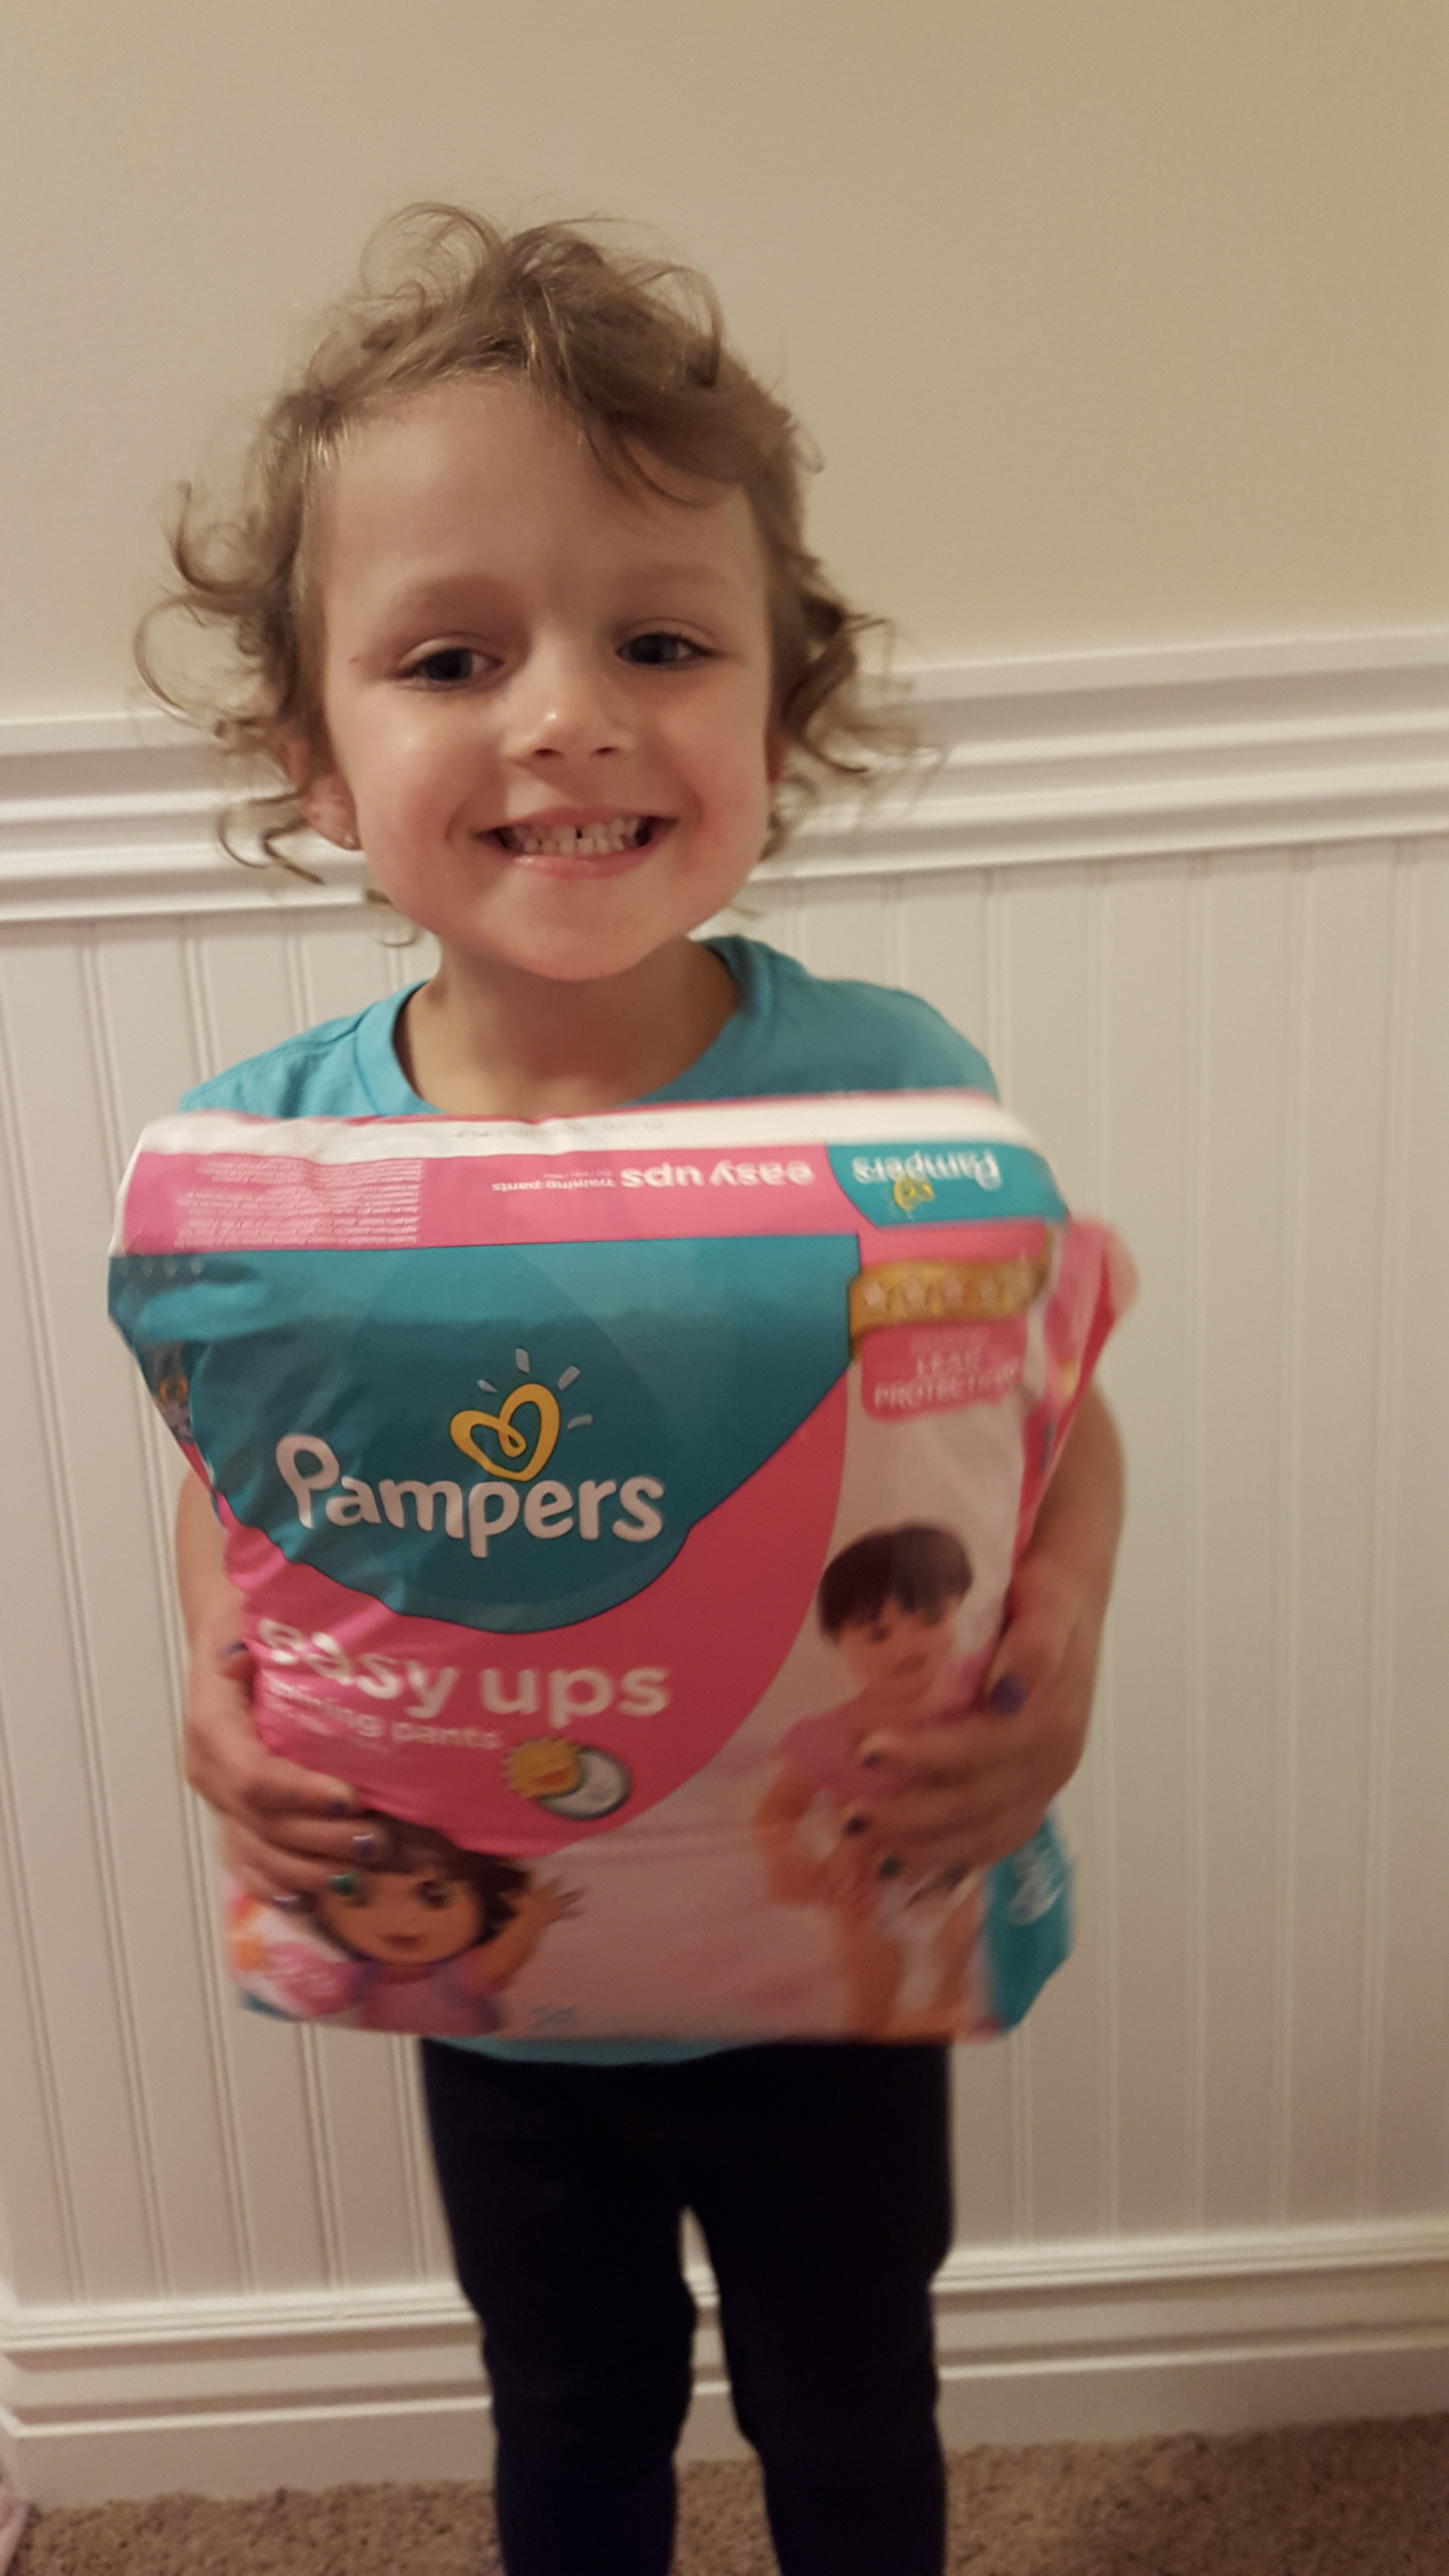 Imgsur Ru Complete our pampers easy ups potty training party! + potty training tips